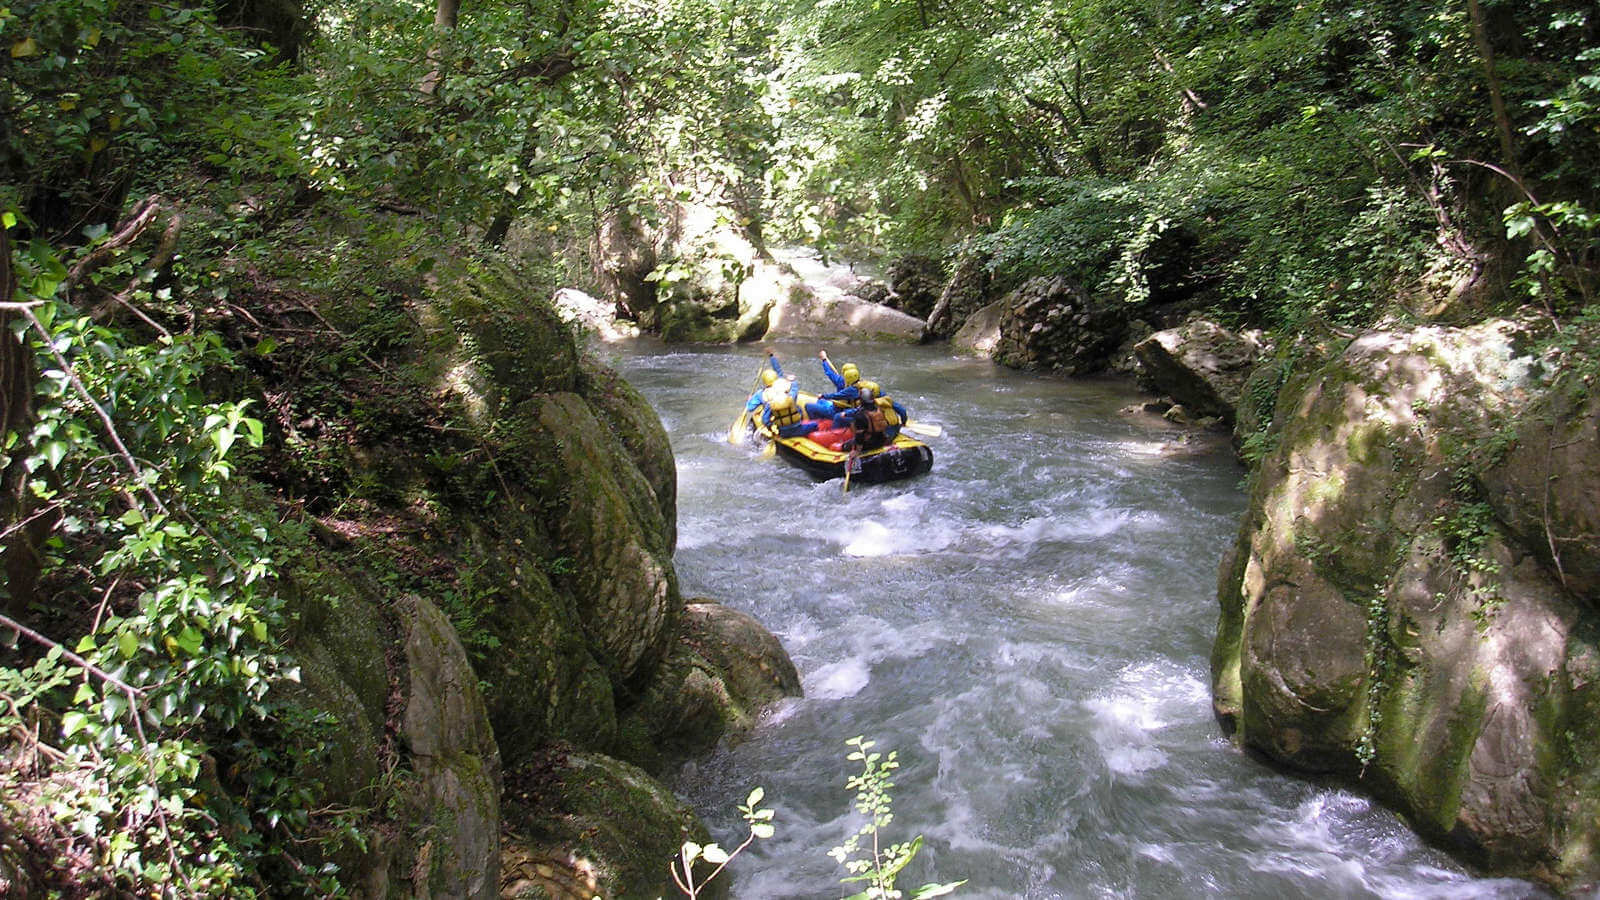 Rafting at Cascata delle Marmore